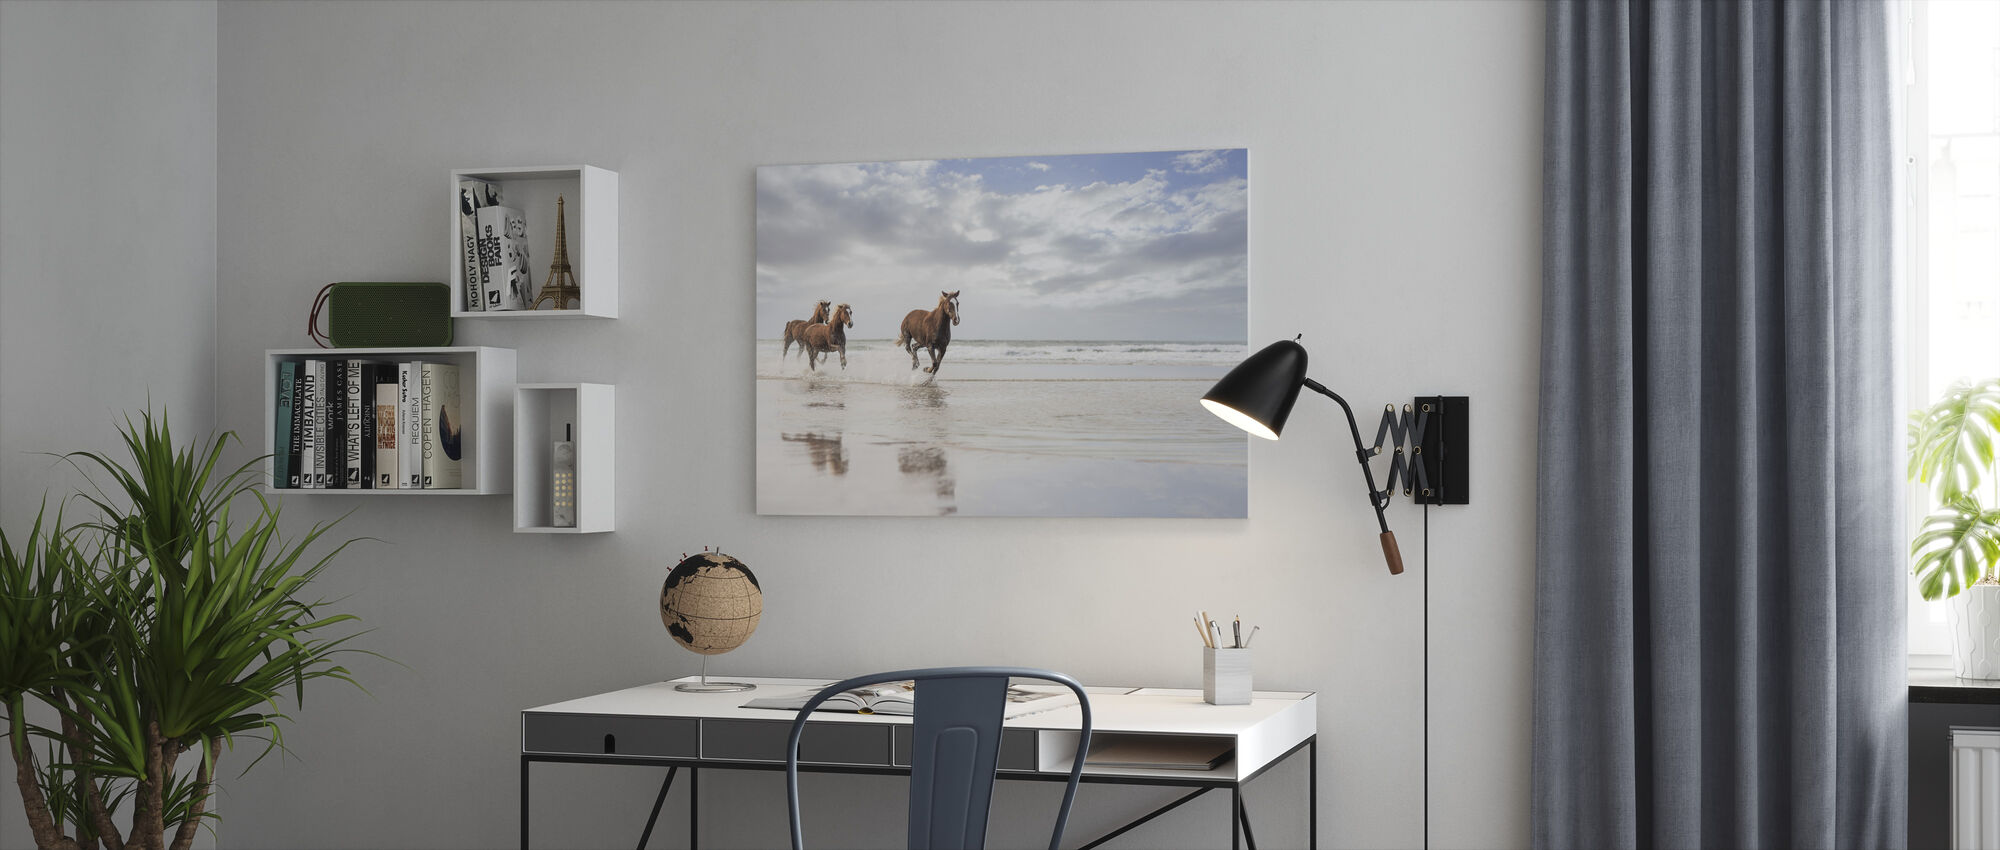 Horses on South African Beach - Canvas print - Office